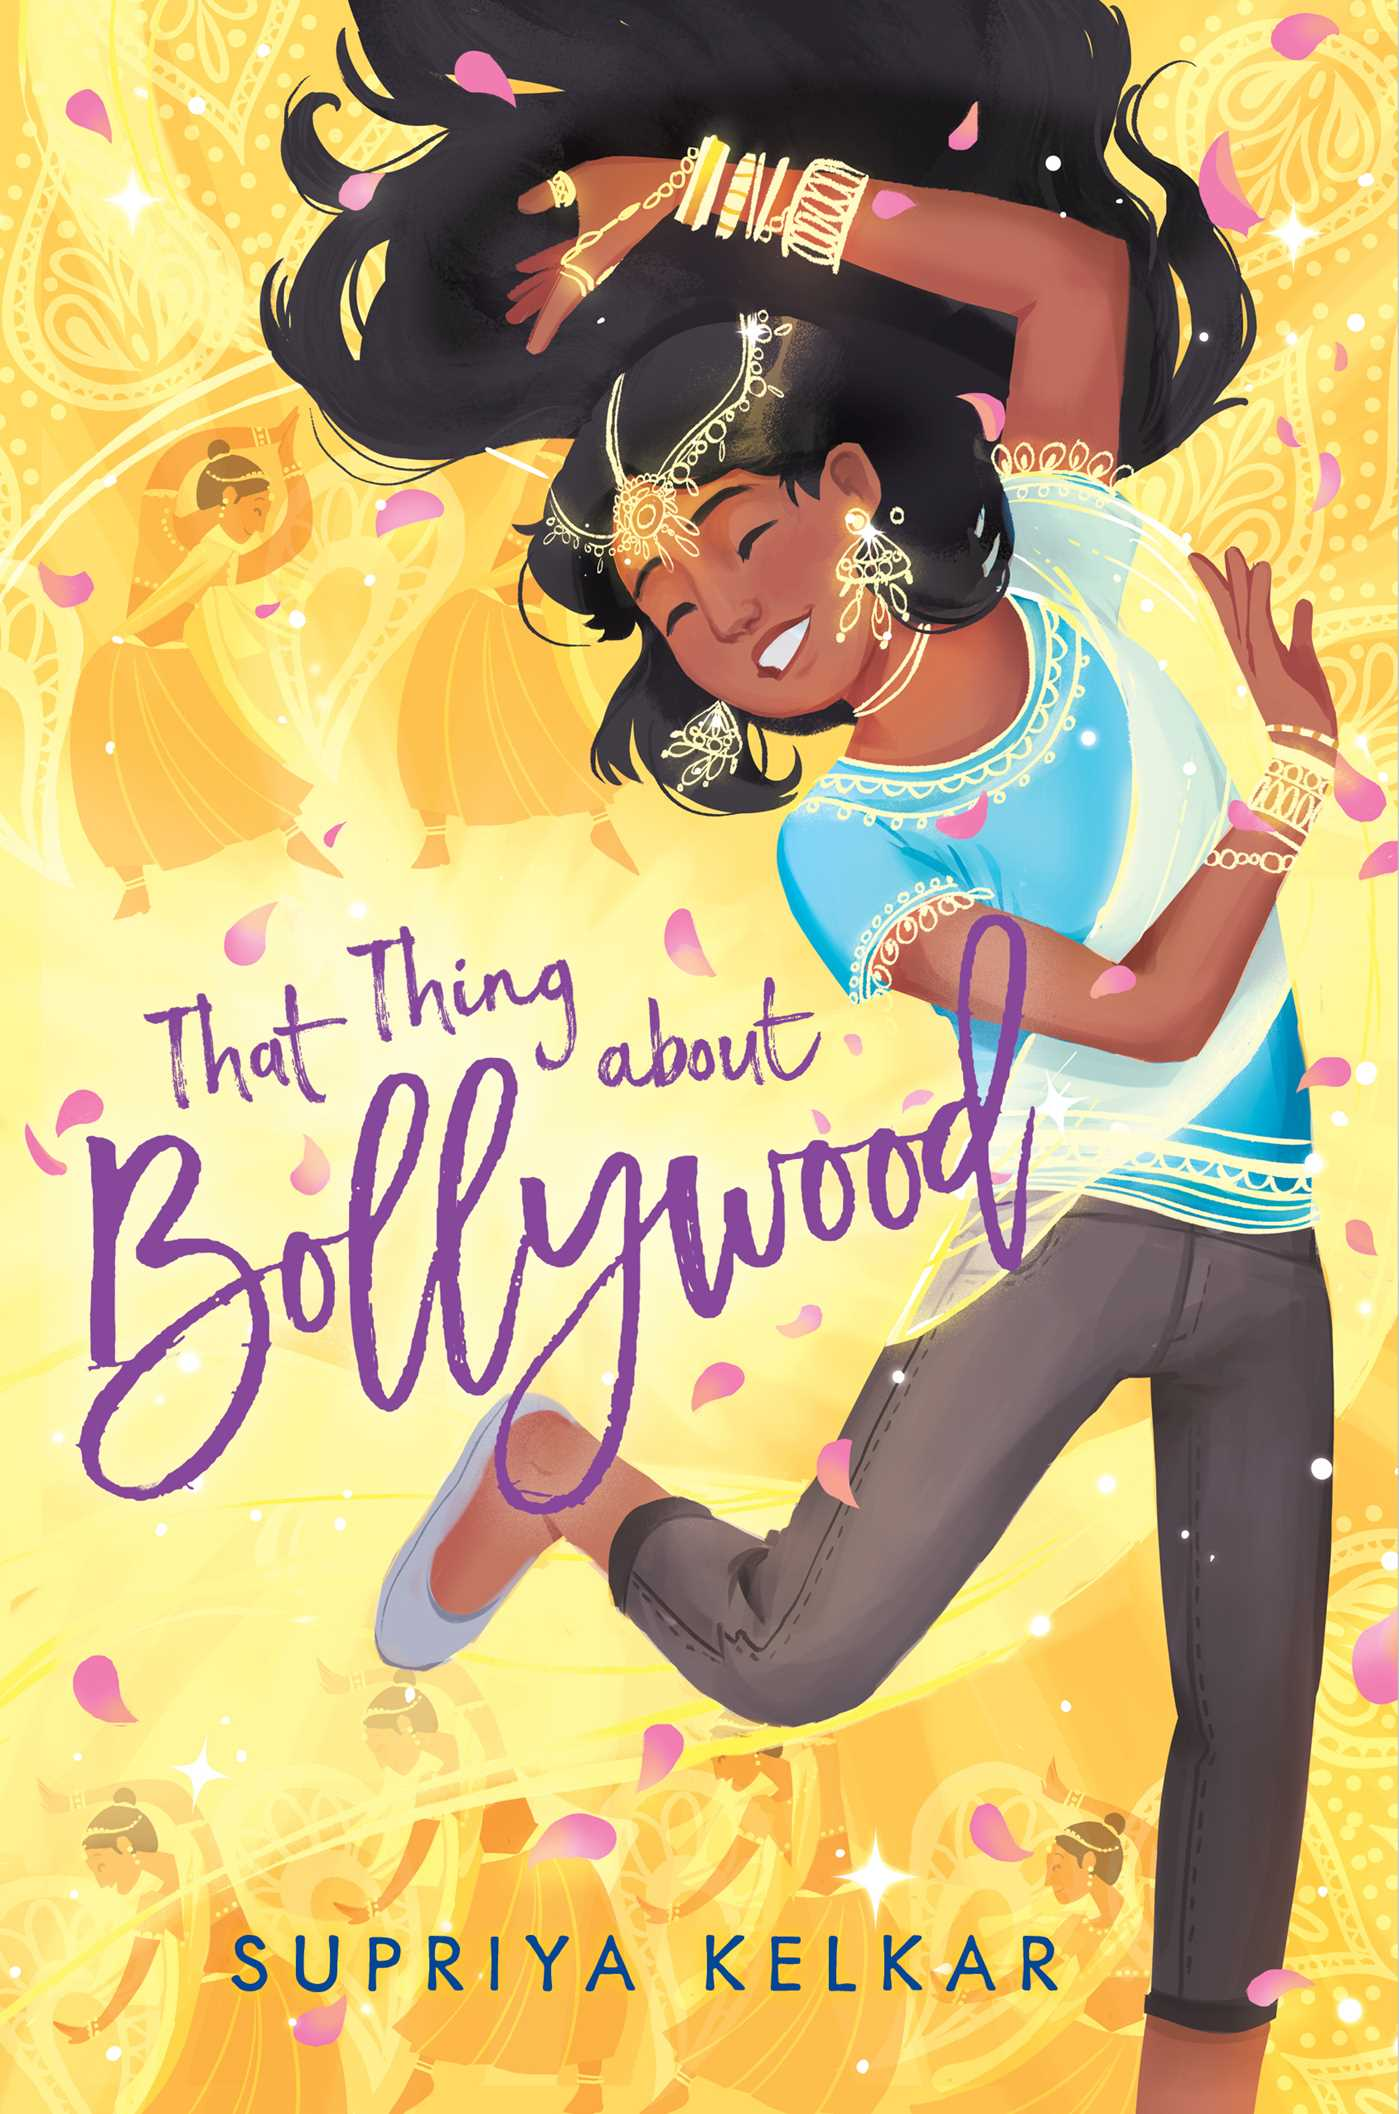 Interview with Supriya Kelkar, author of THAT THING ABOUT BOLLYWOOD!